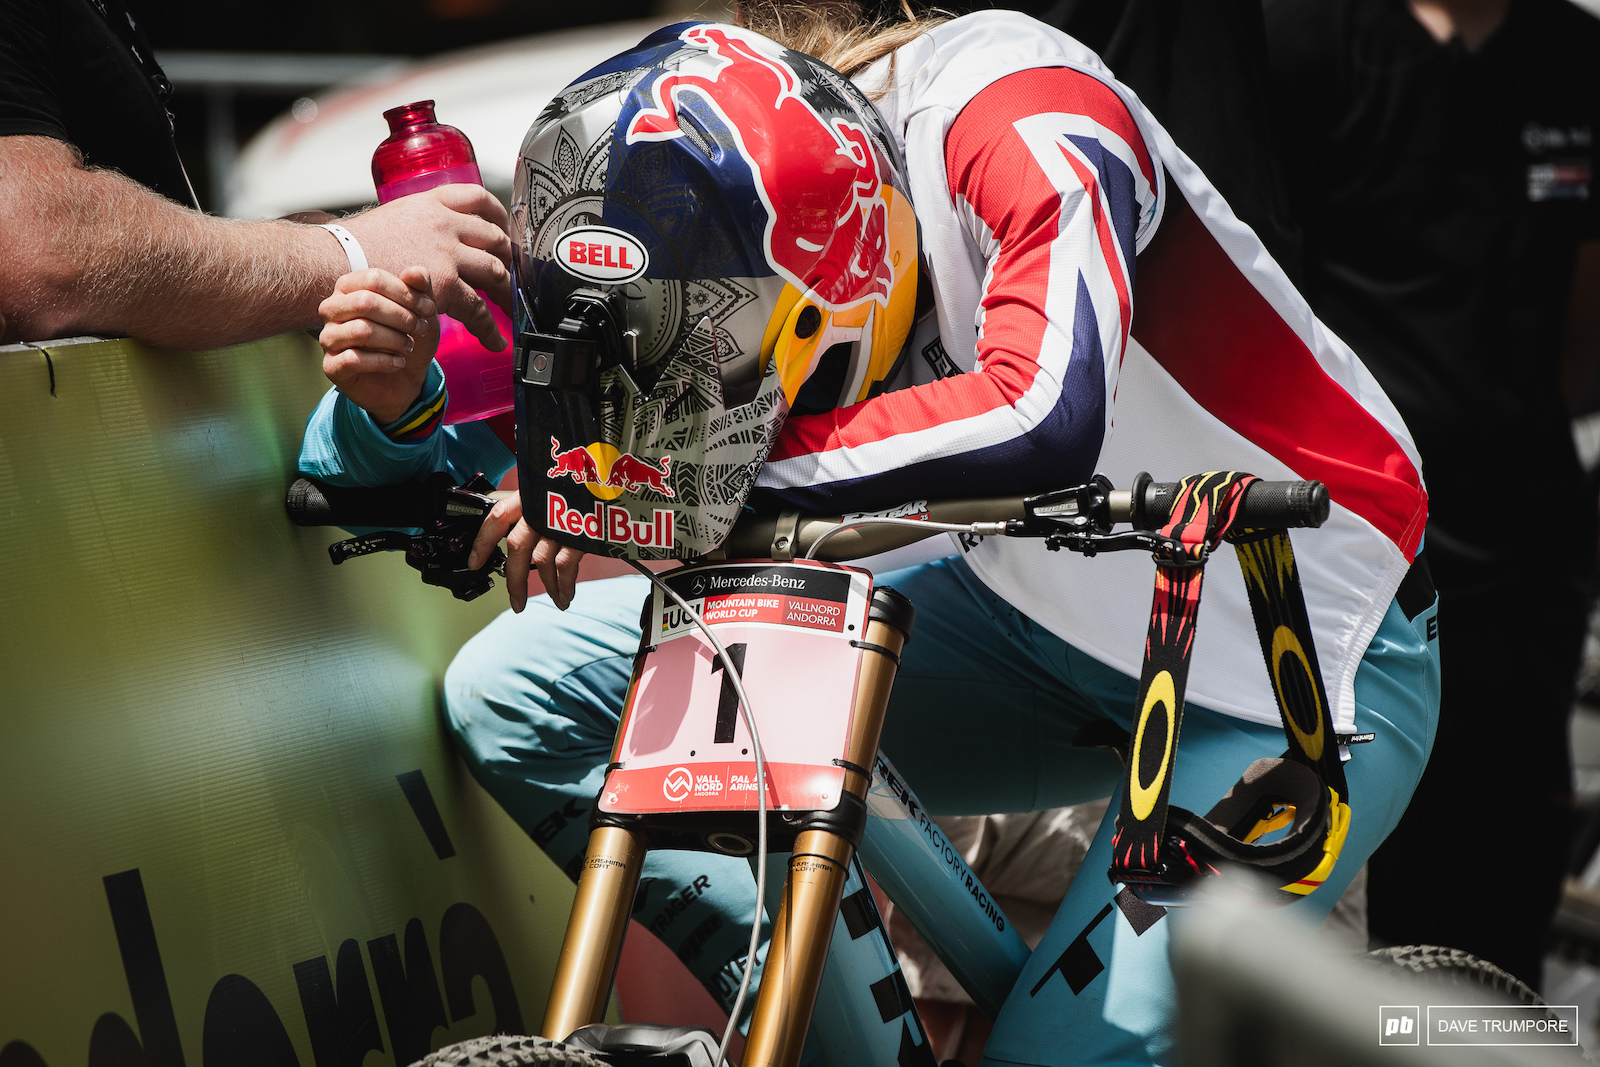 At split two Rachel Atherton was 4.7 seconds up but at the line she would be 4.8 seconds down. What happened in the middle is something she would like to forget about.